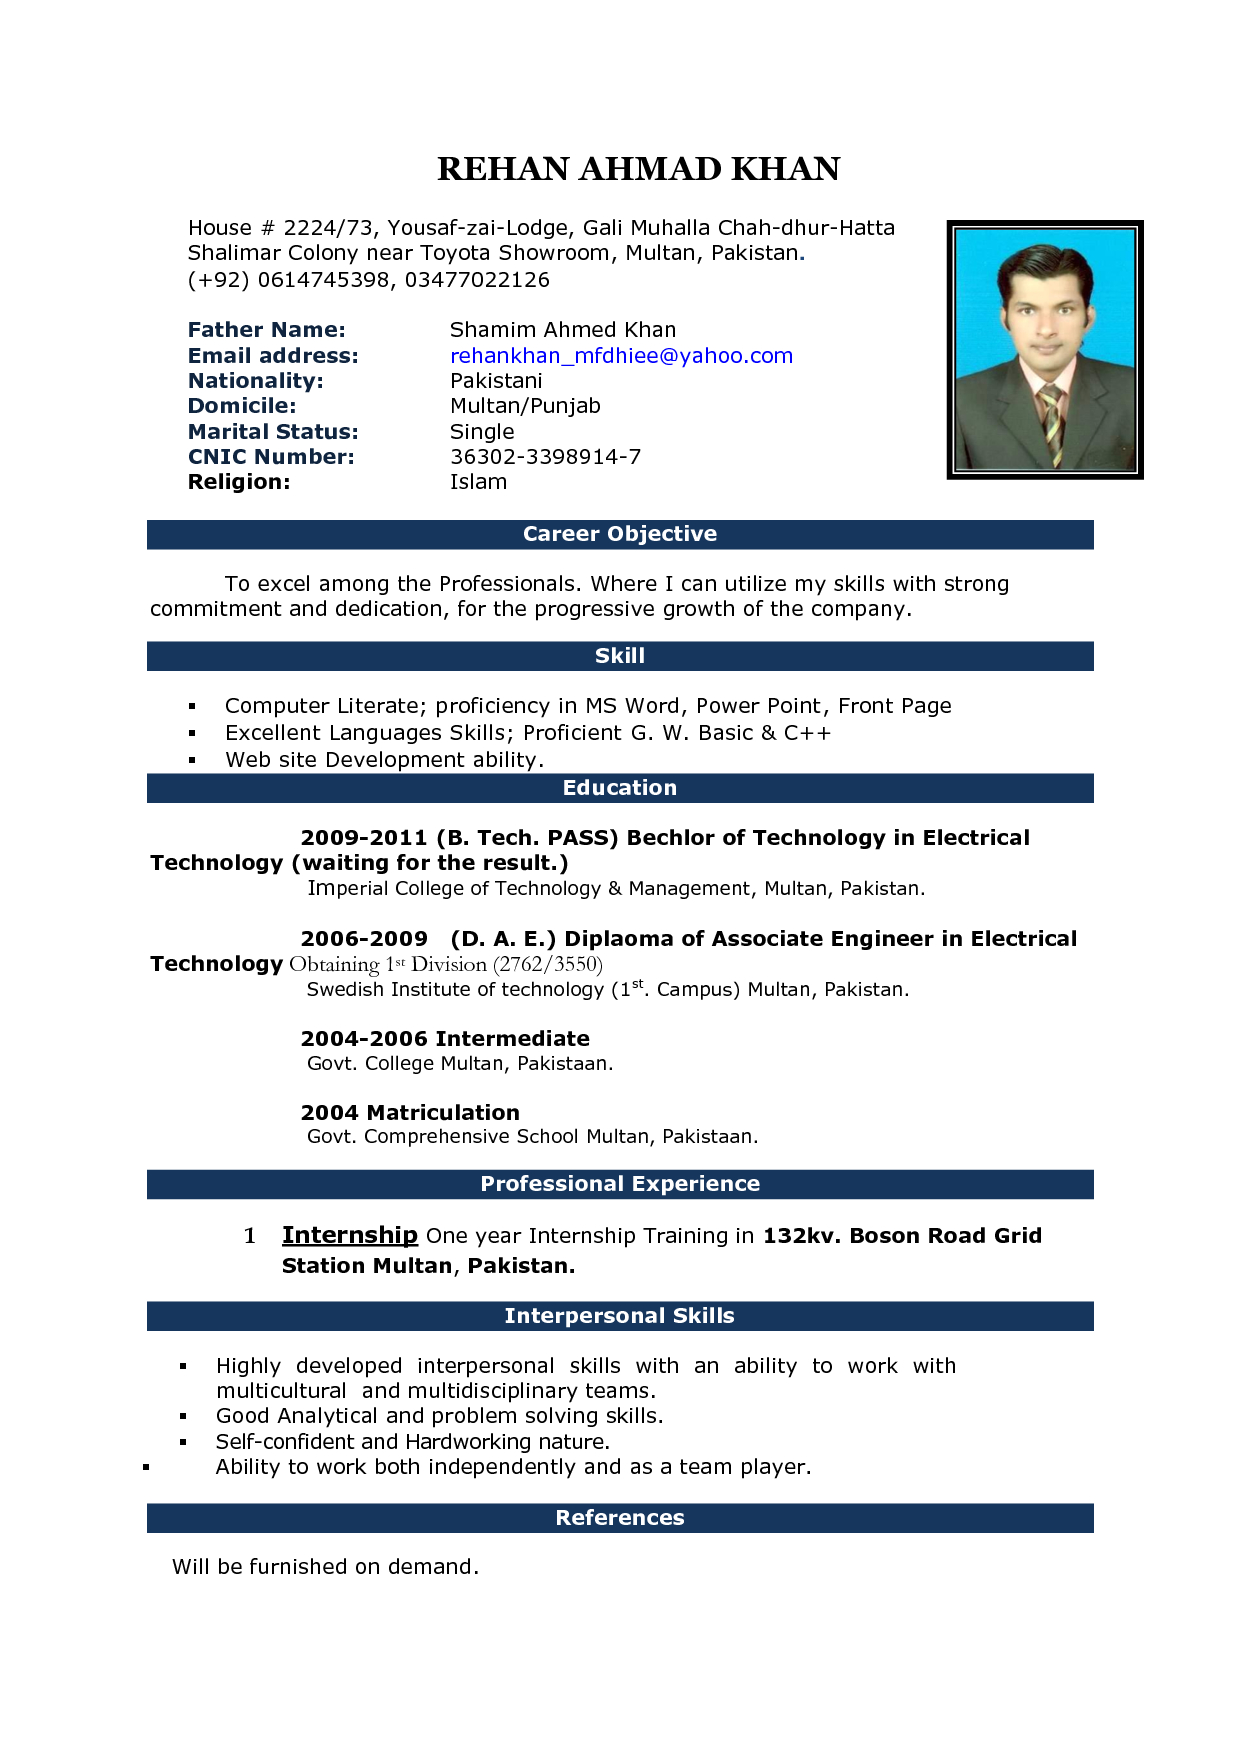 Microsoft Word Template Resume